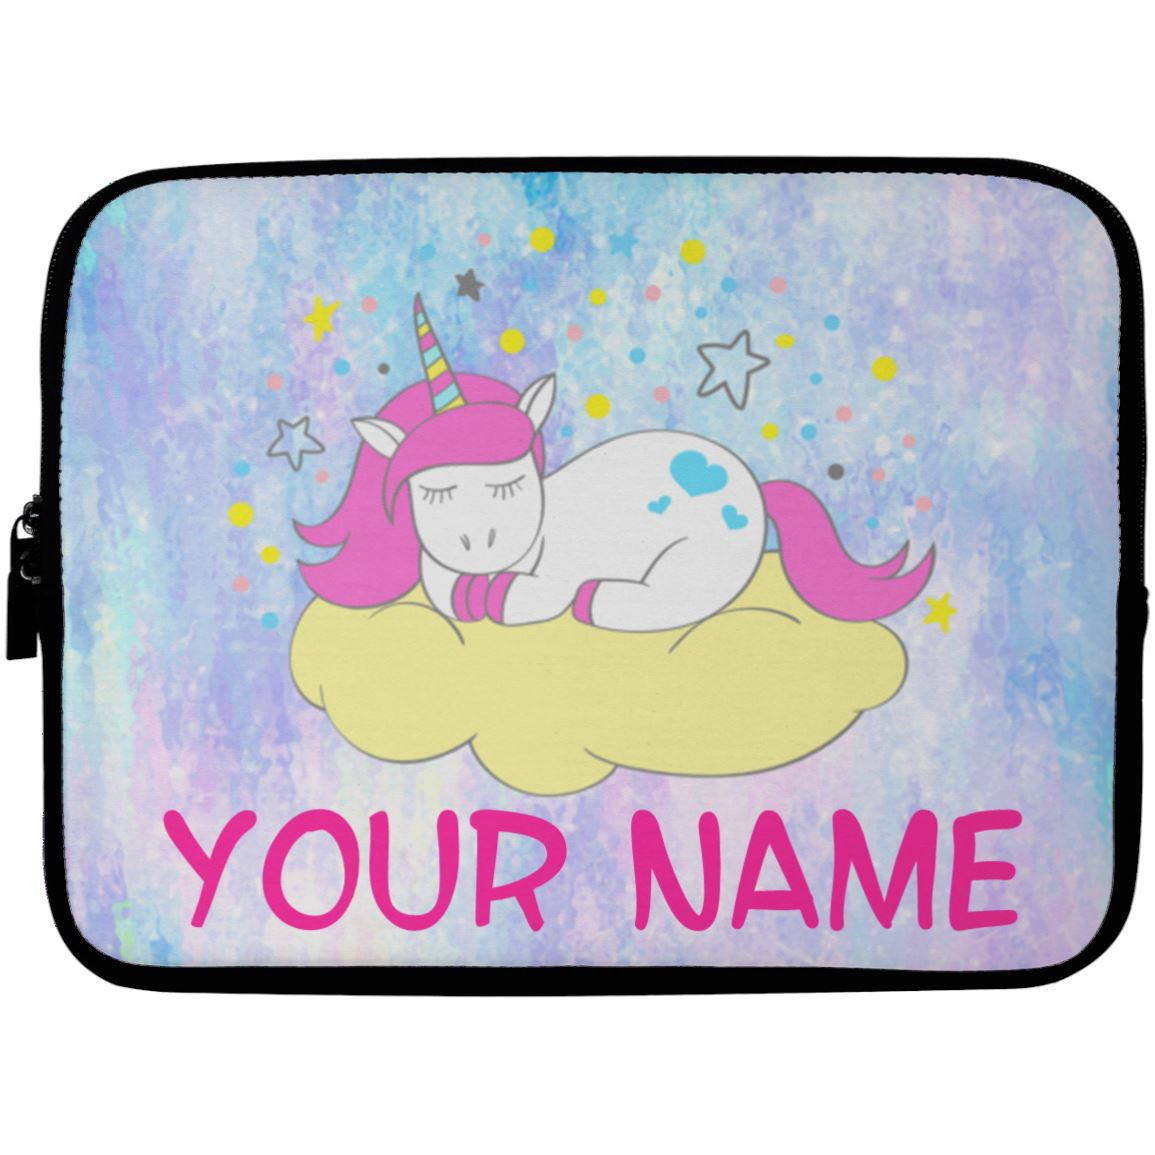 Personalized Sleeping Unicorn Laptop Case Sleeve Accessories 10 inch